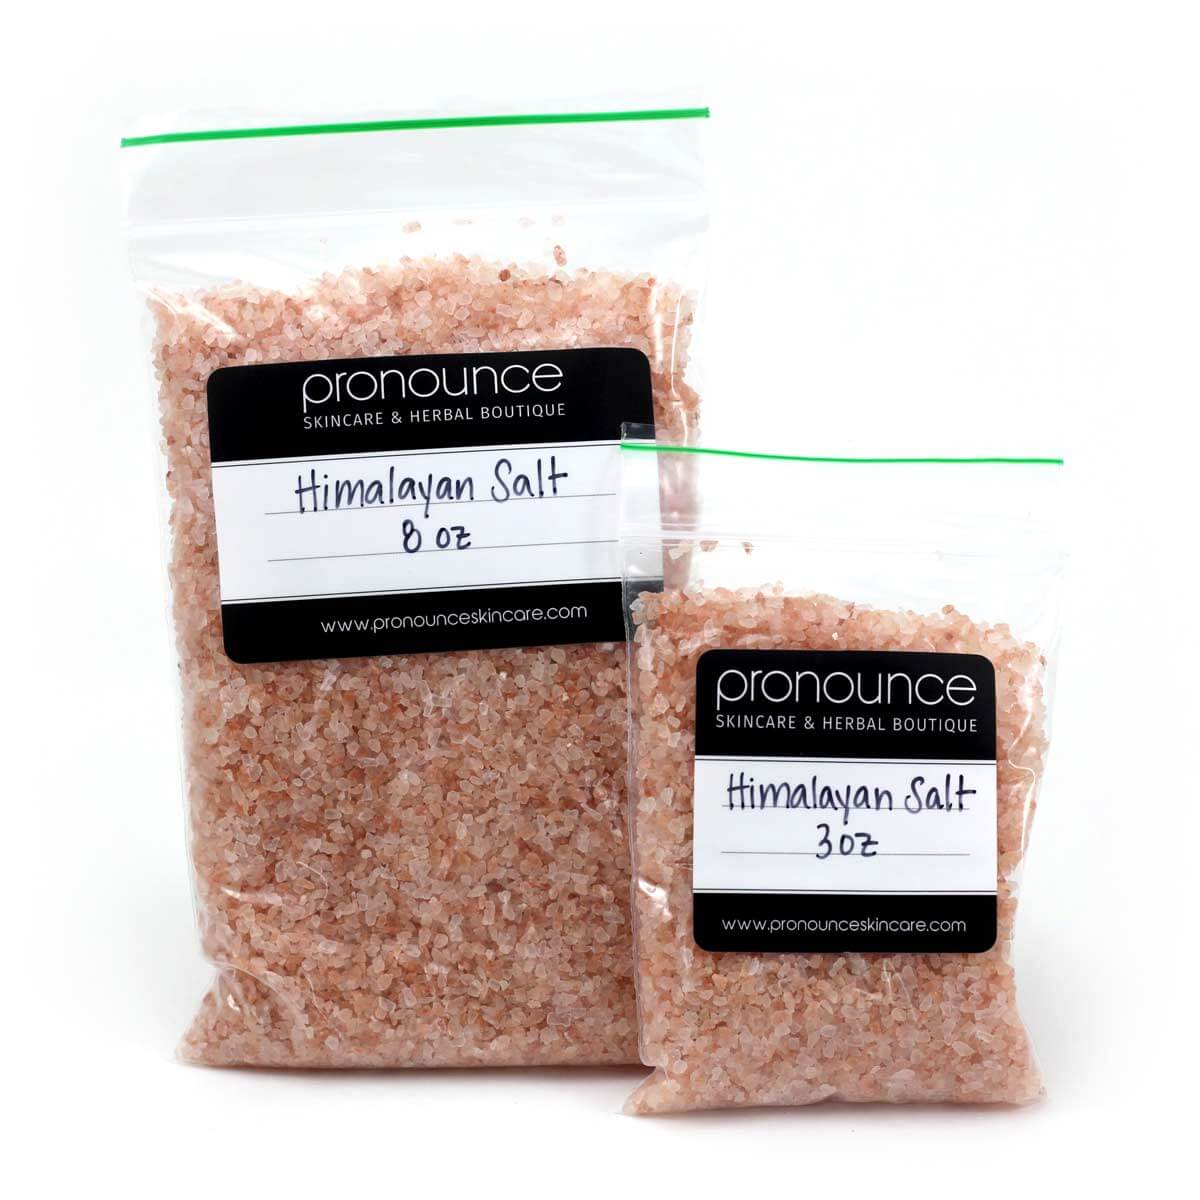 2 Bags of Himalayan Salt-Pronounce Skincare and Herbal Boutique